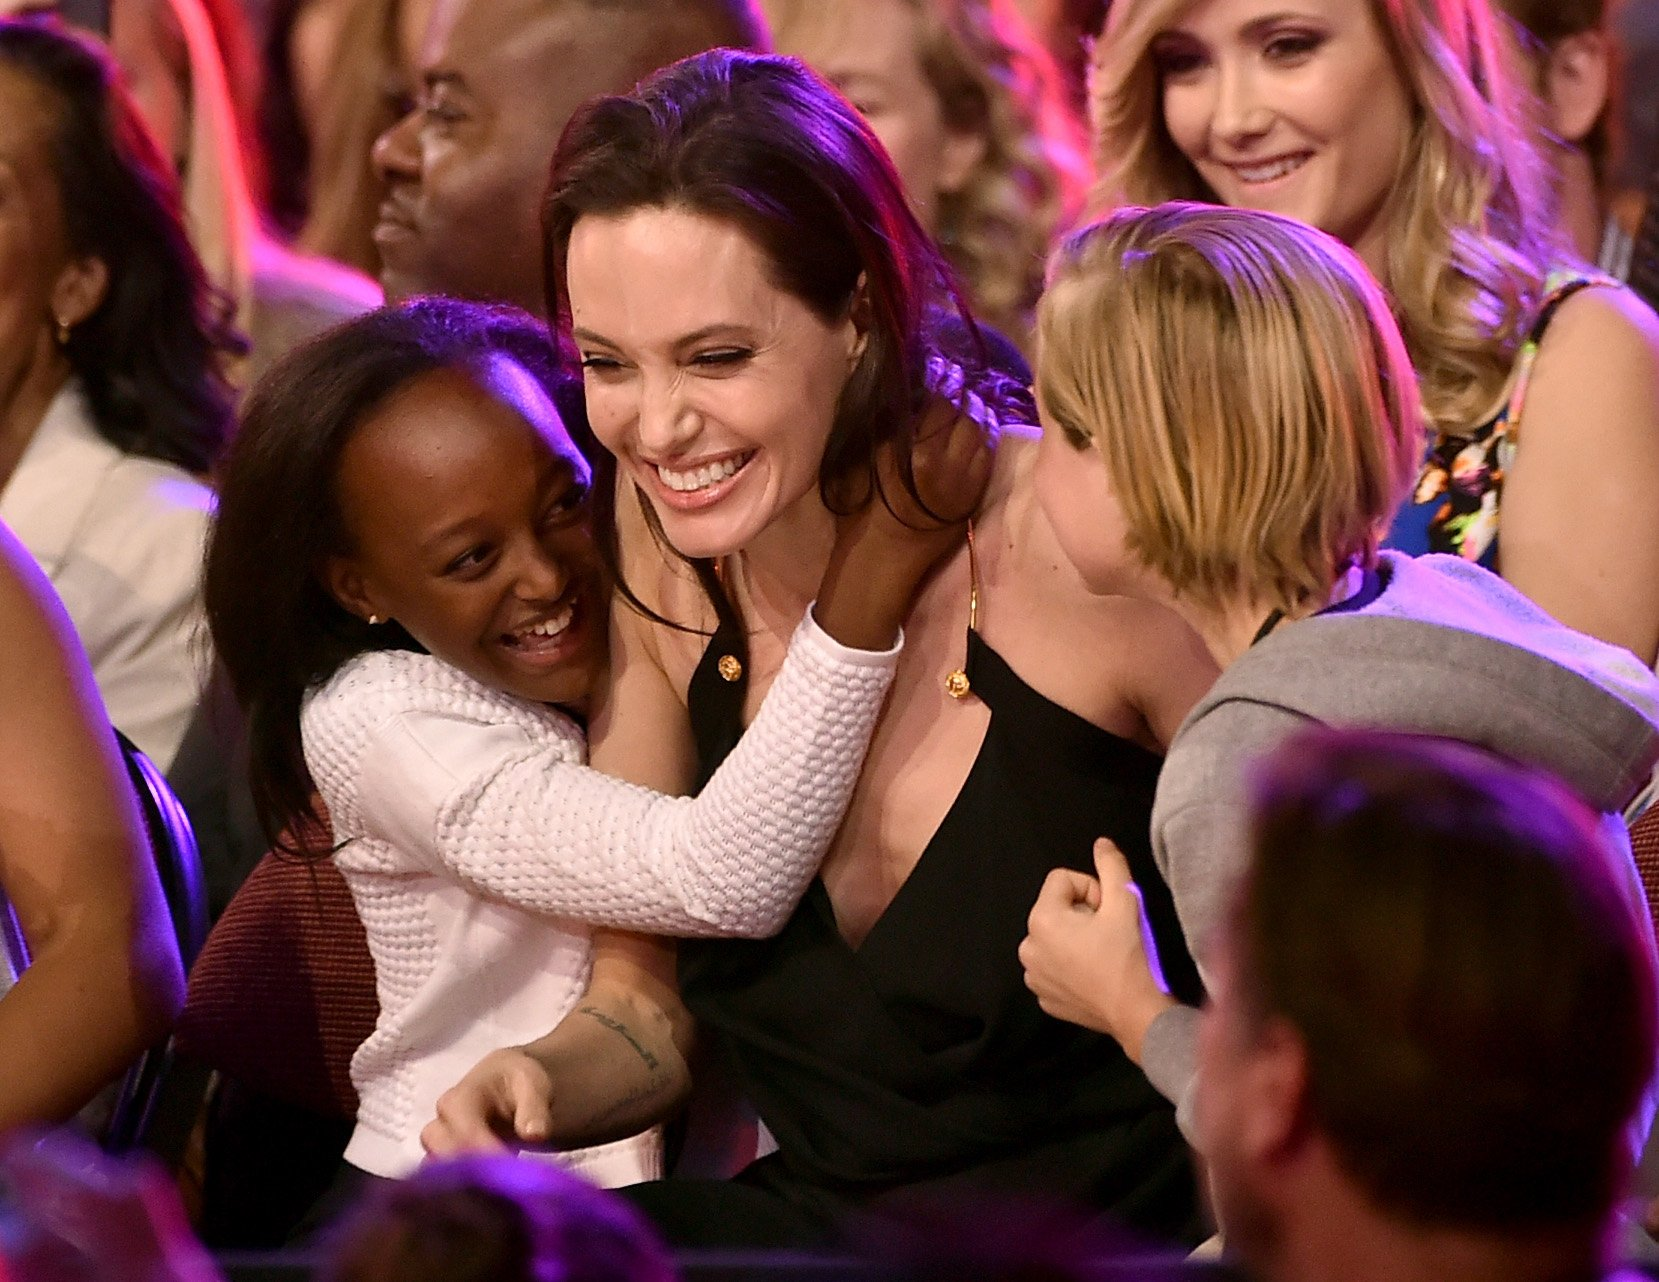 Angelina Jolie, Zahara Marley Jolie-Pitt, and Shiloh Nouvel Jolie-Pitt on March 28, 2015. | Photo: Getty Images